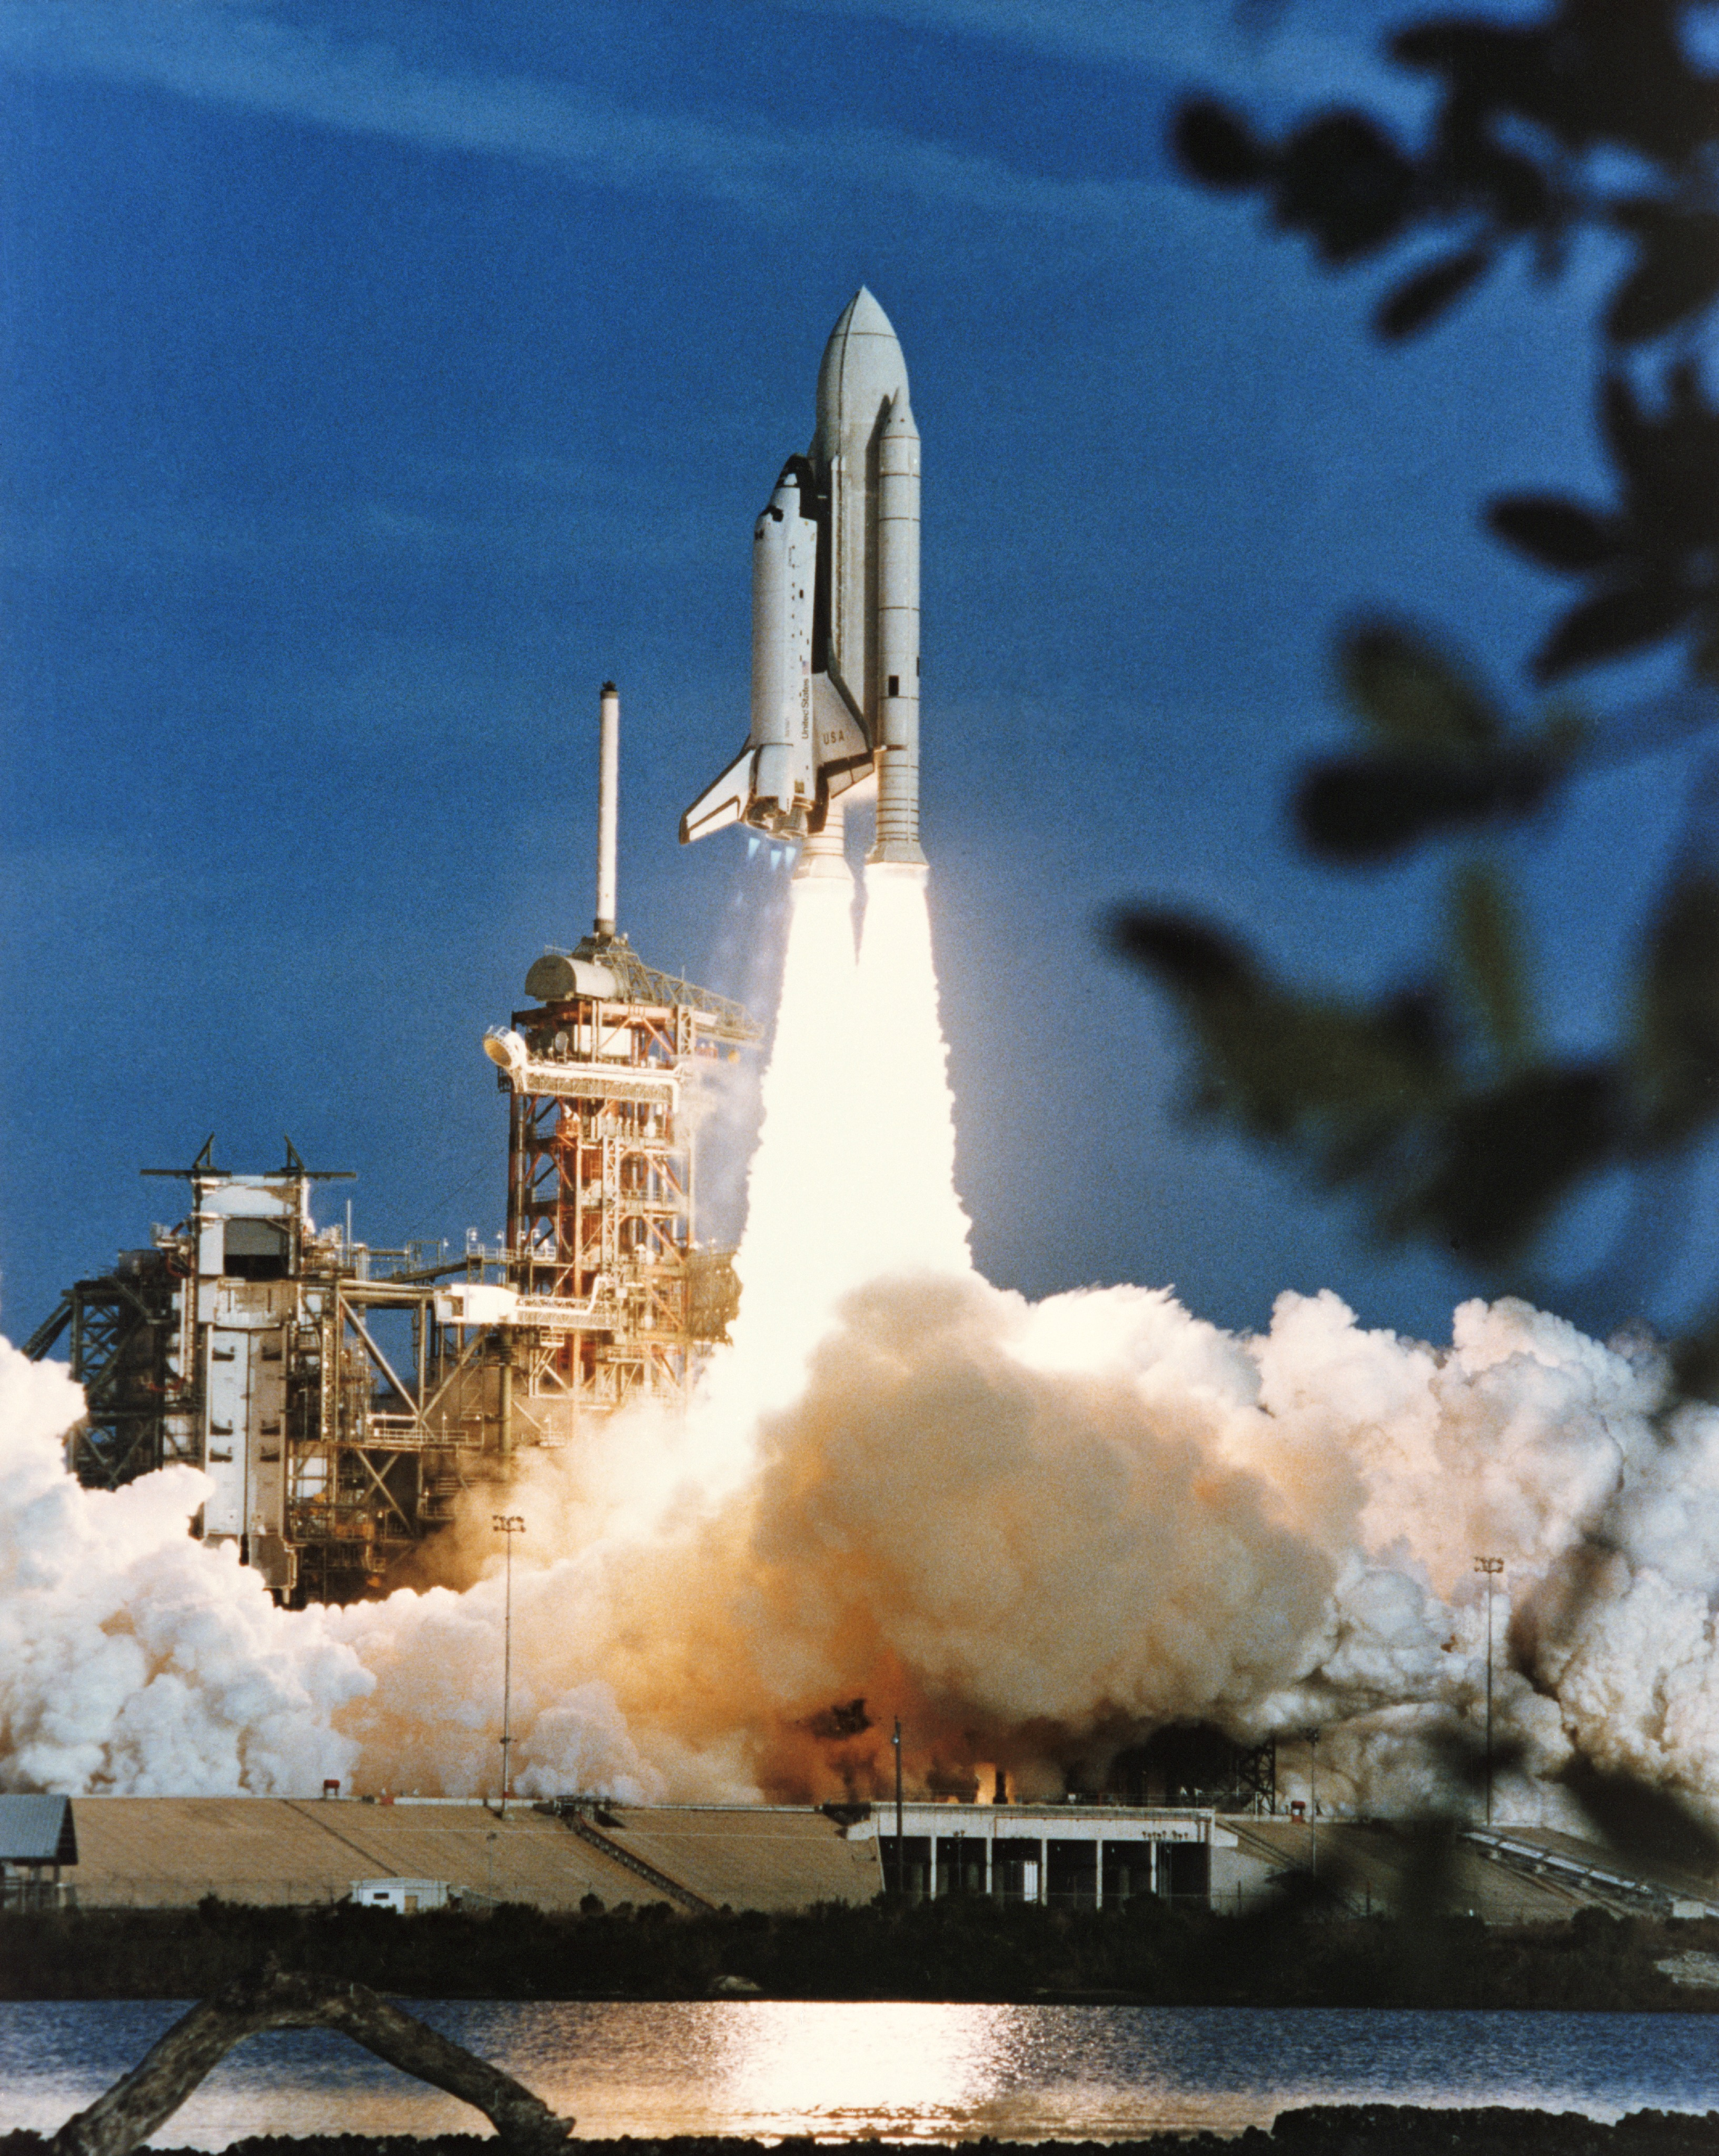 space shuttle program history - photo #16